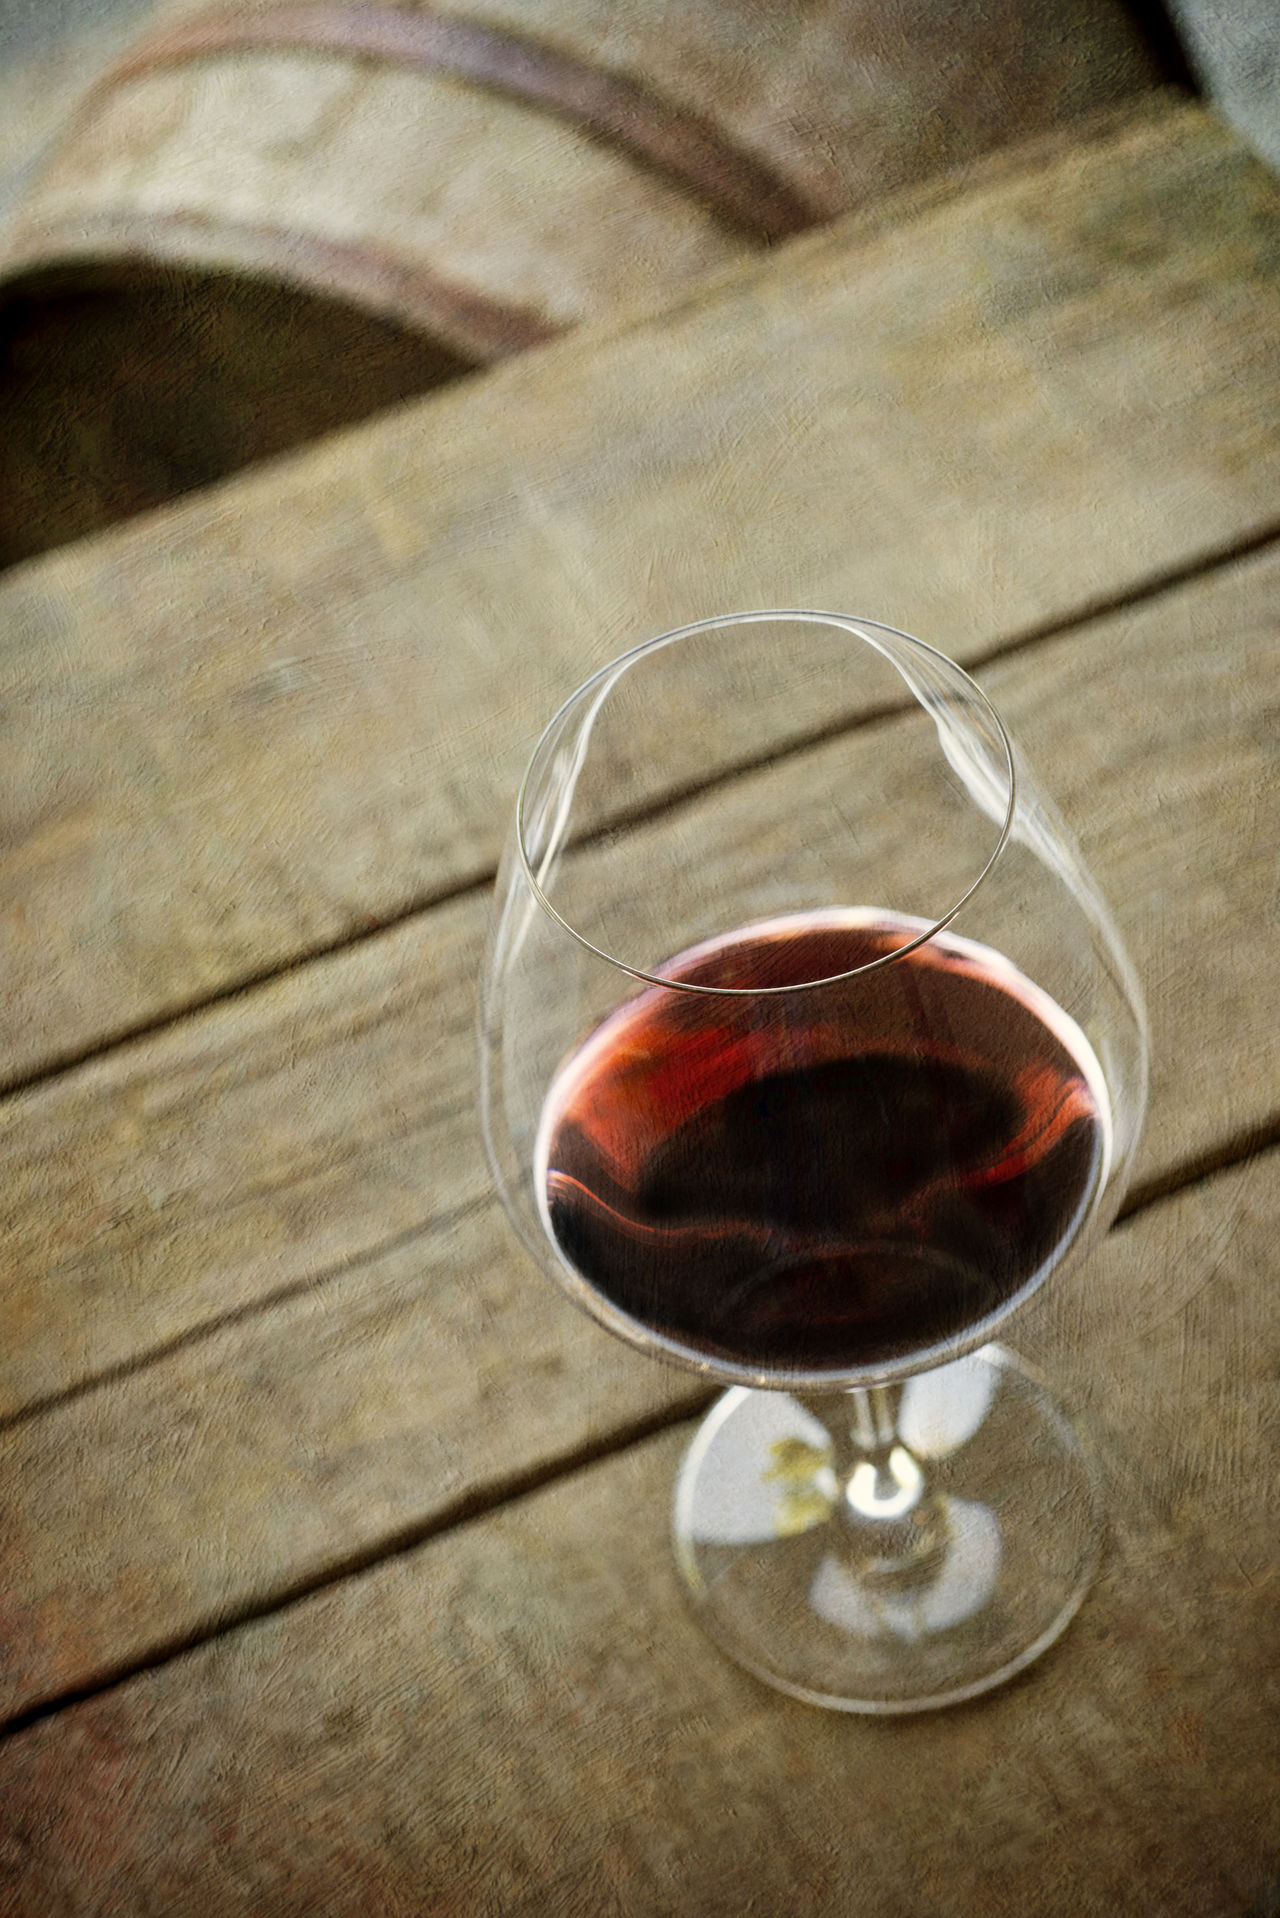 Alcoholic Drink Barrel Beverage Boards Cabernet_sauvignon Drink Focus On Foreground Food And Drink Indoors  Merlot No People One Object Red Wine Red Wine♡ Still Life Vertical Composition Wine Wineglass Wood Surface